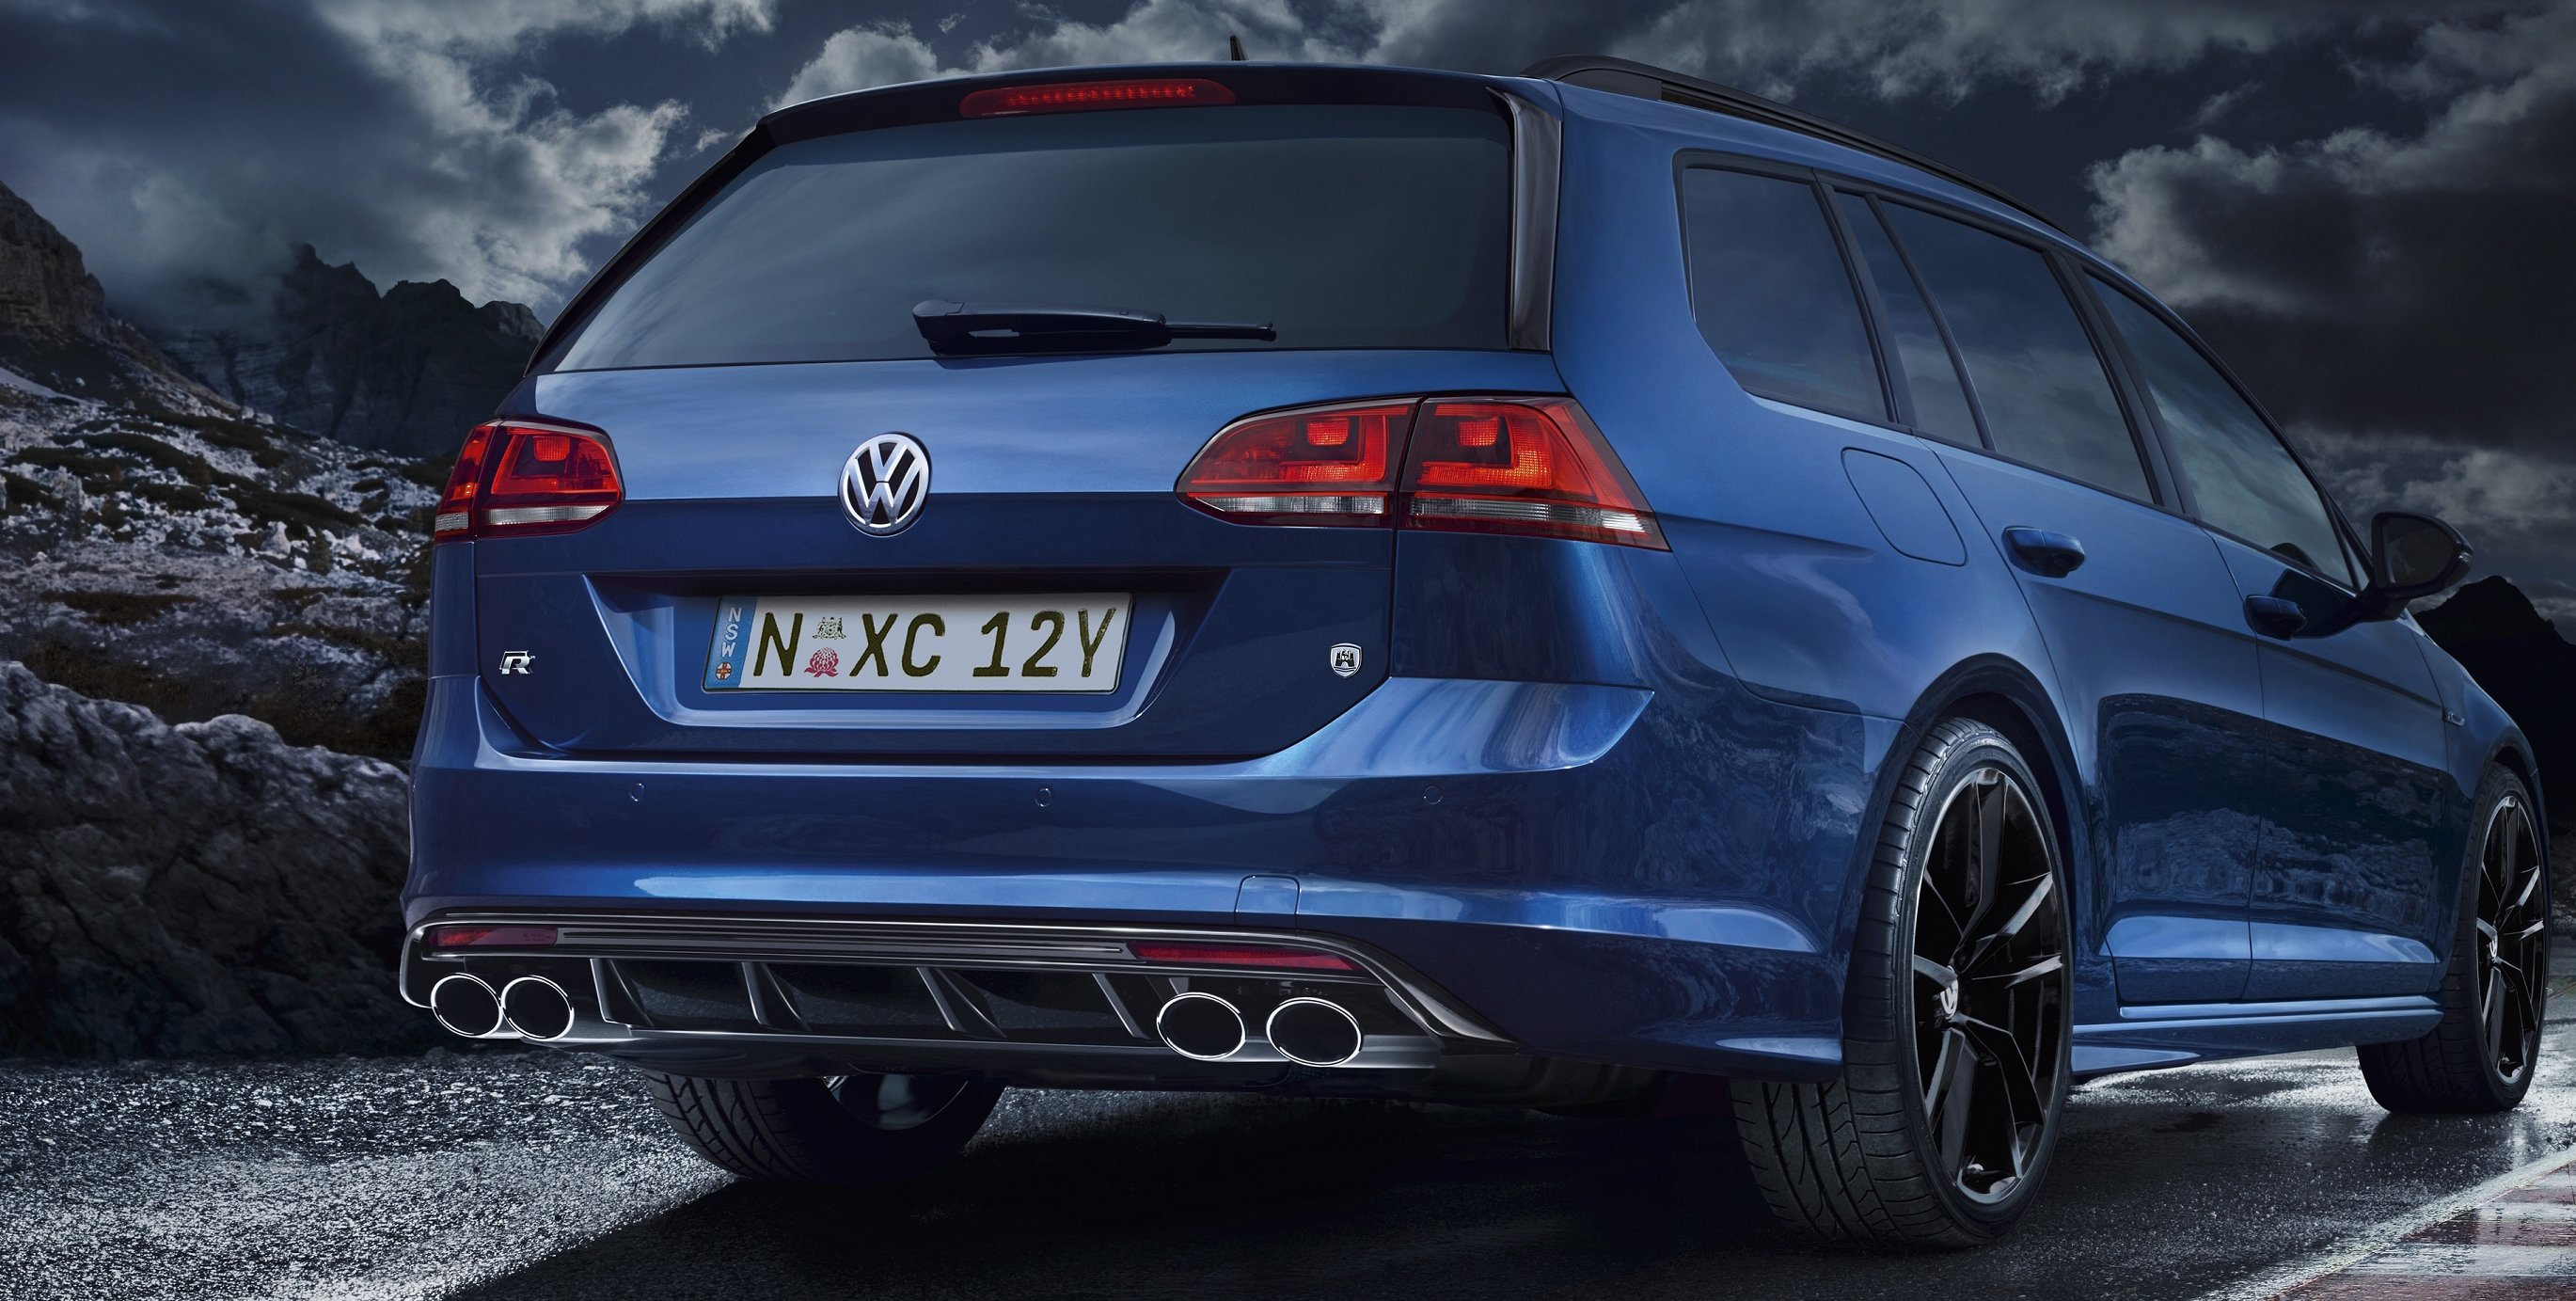 volkswagen golf r wagon priced at 58 990 photos 1 of 4. Black Bedroom Furniture Sets. Home Design Ideas